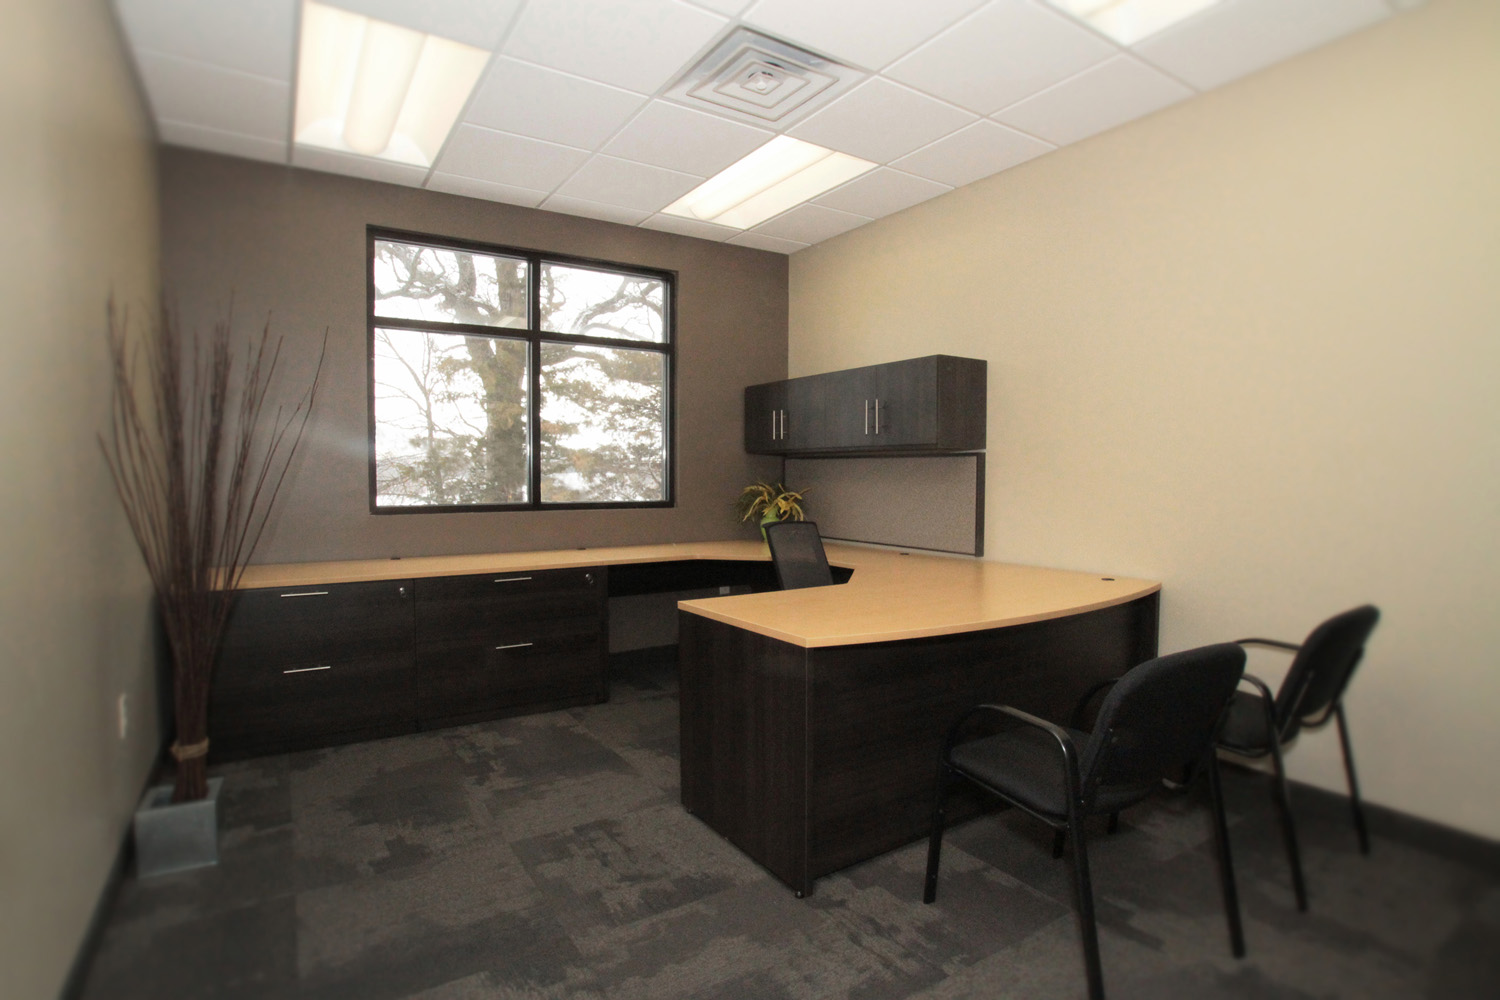 Office space design mankato new used office furnishings mankato - Design for small office space photos ...